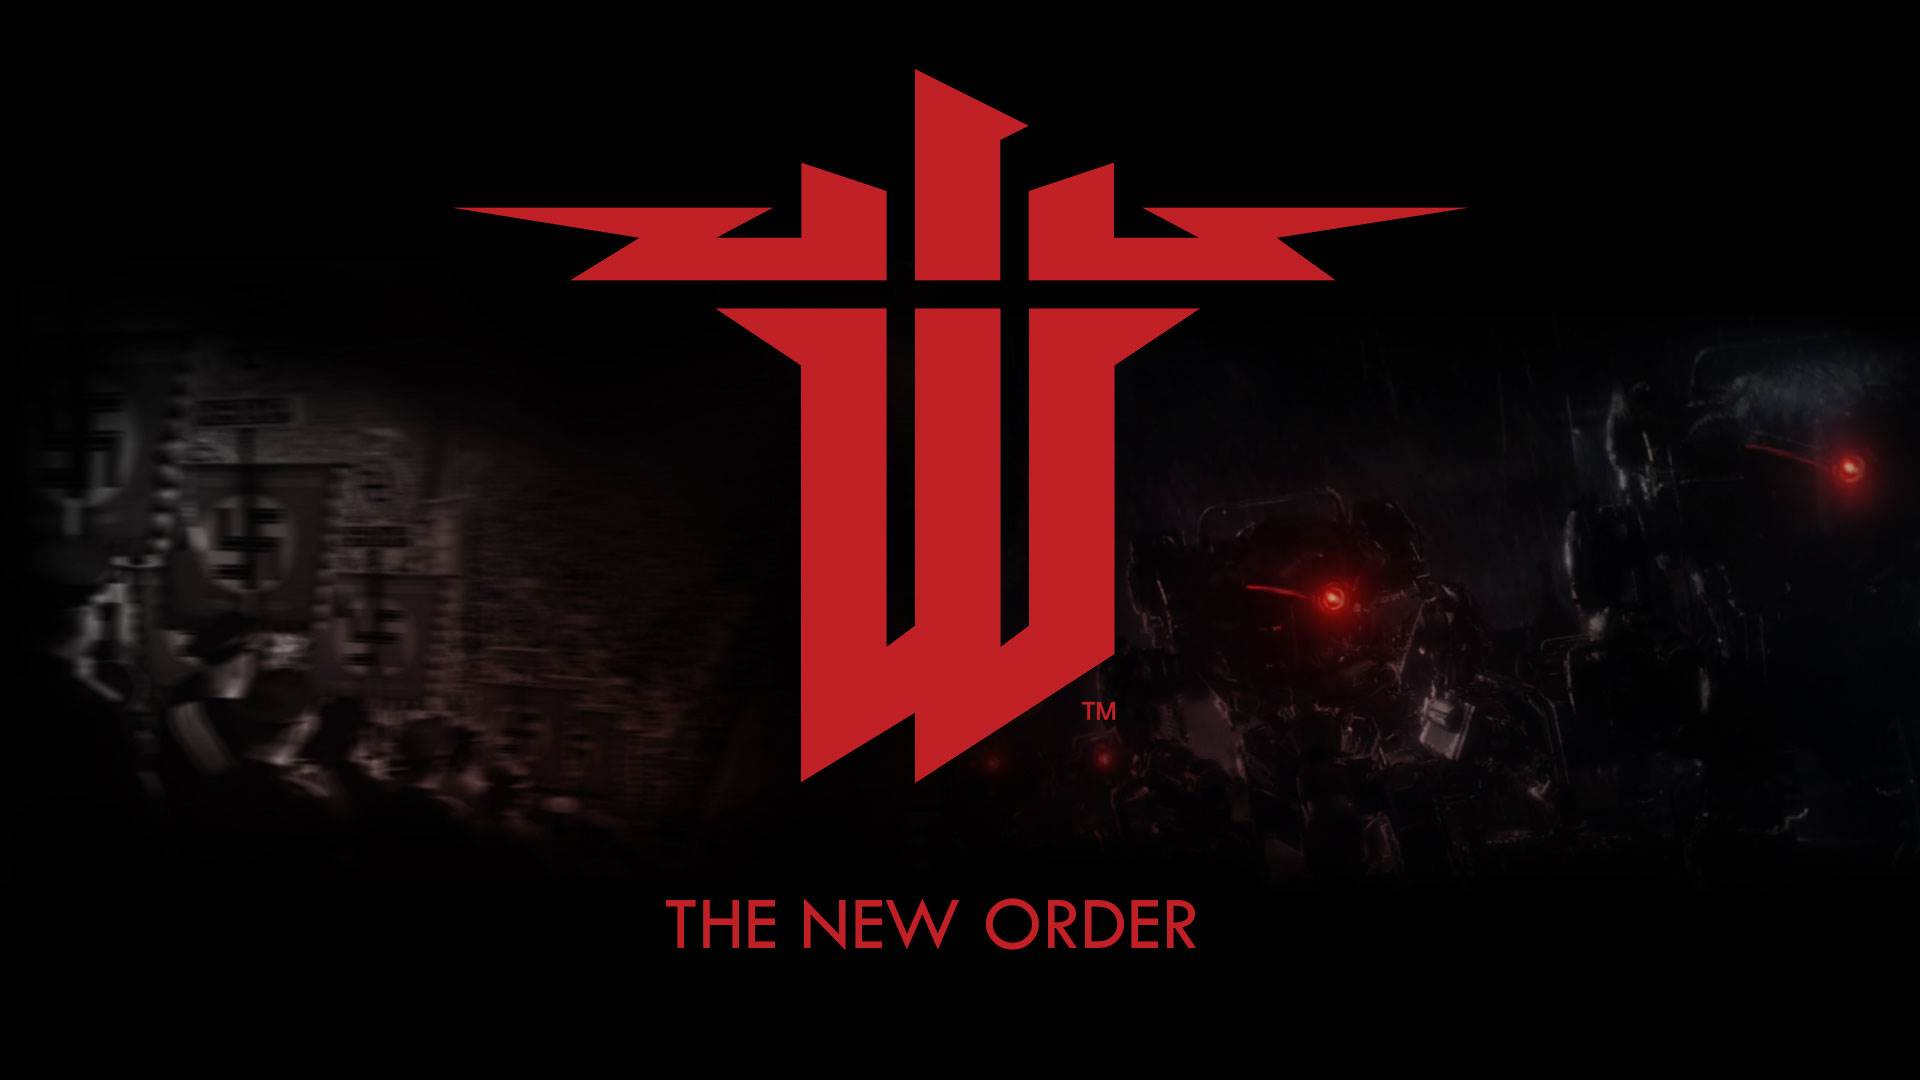 wolfenstein the new order wallpaper in hd